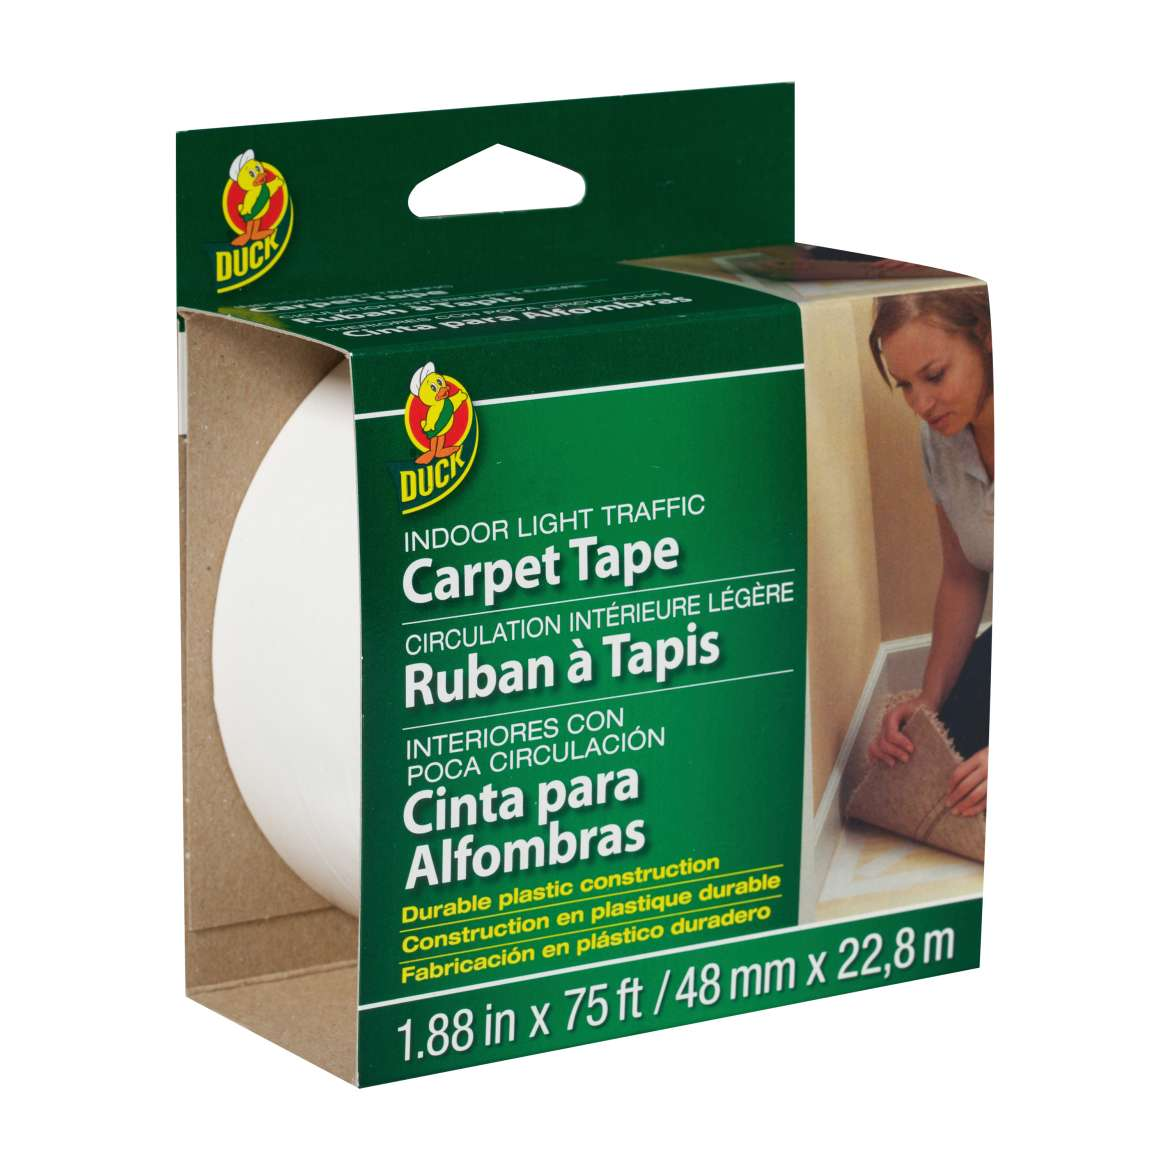 Duck® Brand Indoor Light Traffic Carpet Tape - White, 1.88 in. x 75 ft. Image